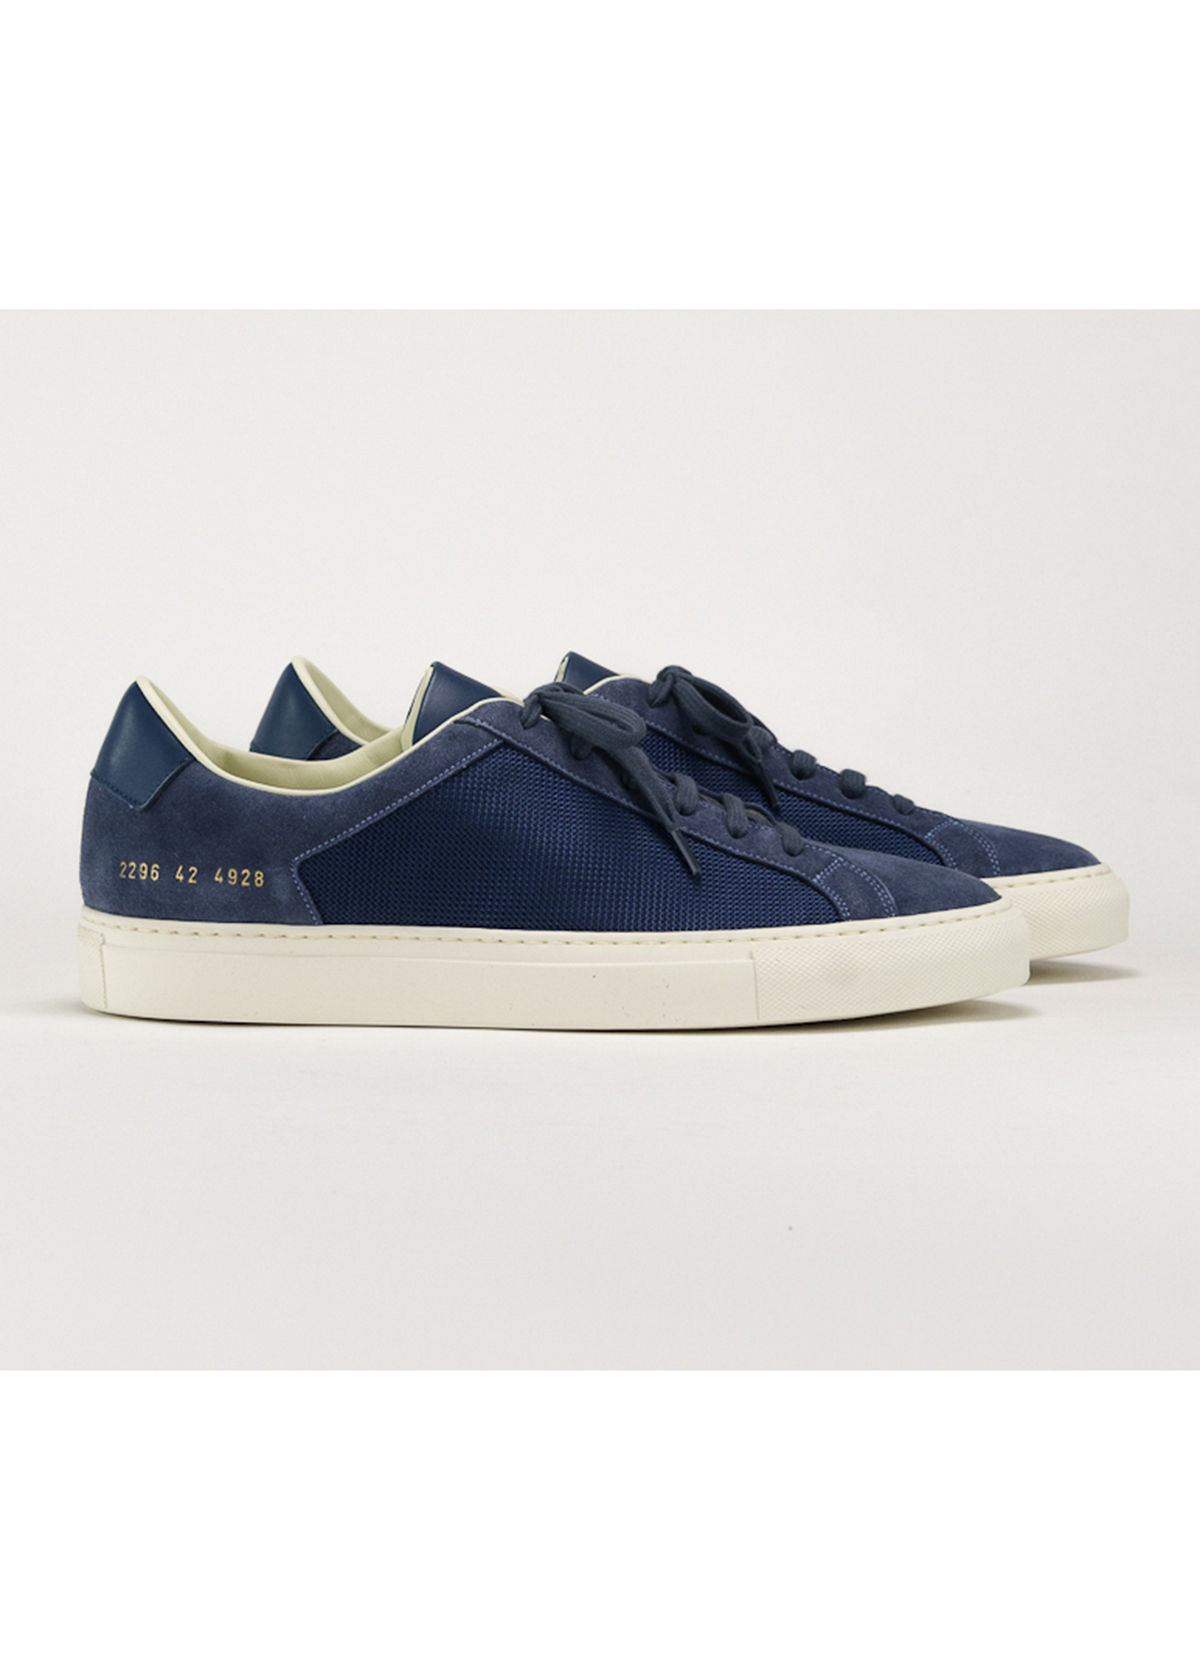 Common Projects MEN'S RETRO SUMMER EDITION MIX-LEATHER LOW-TOP SNEAKERS